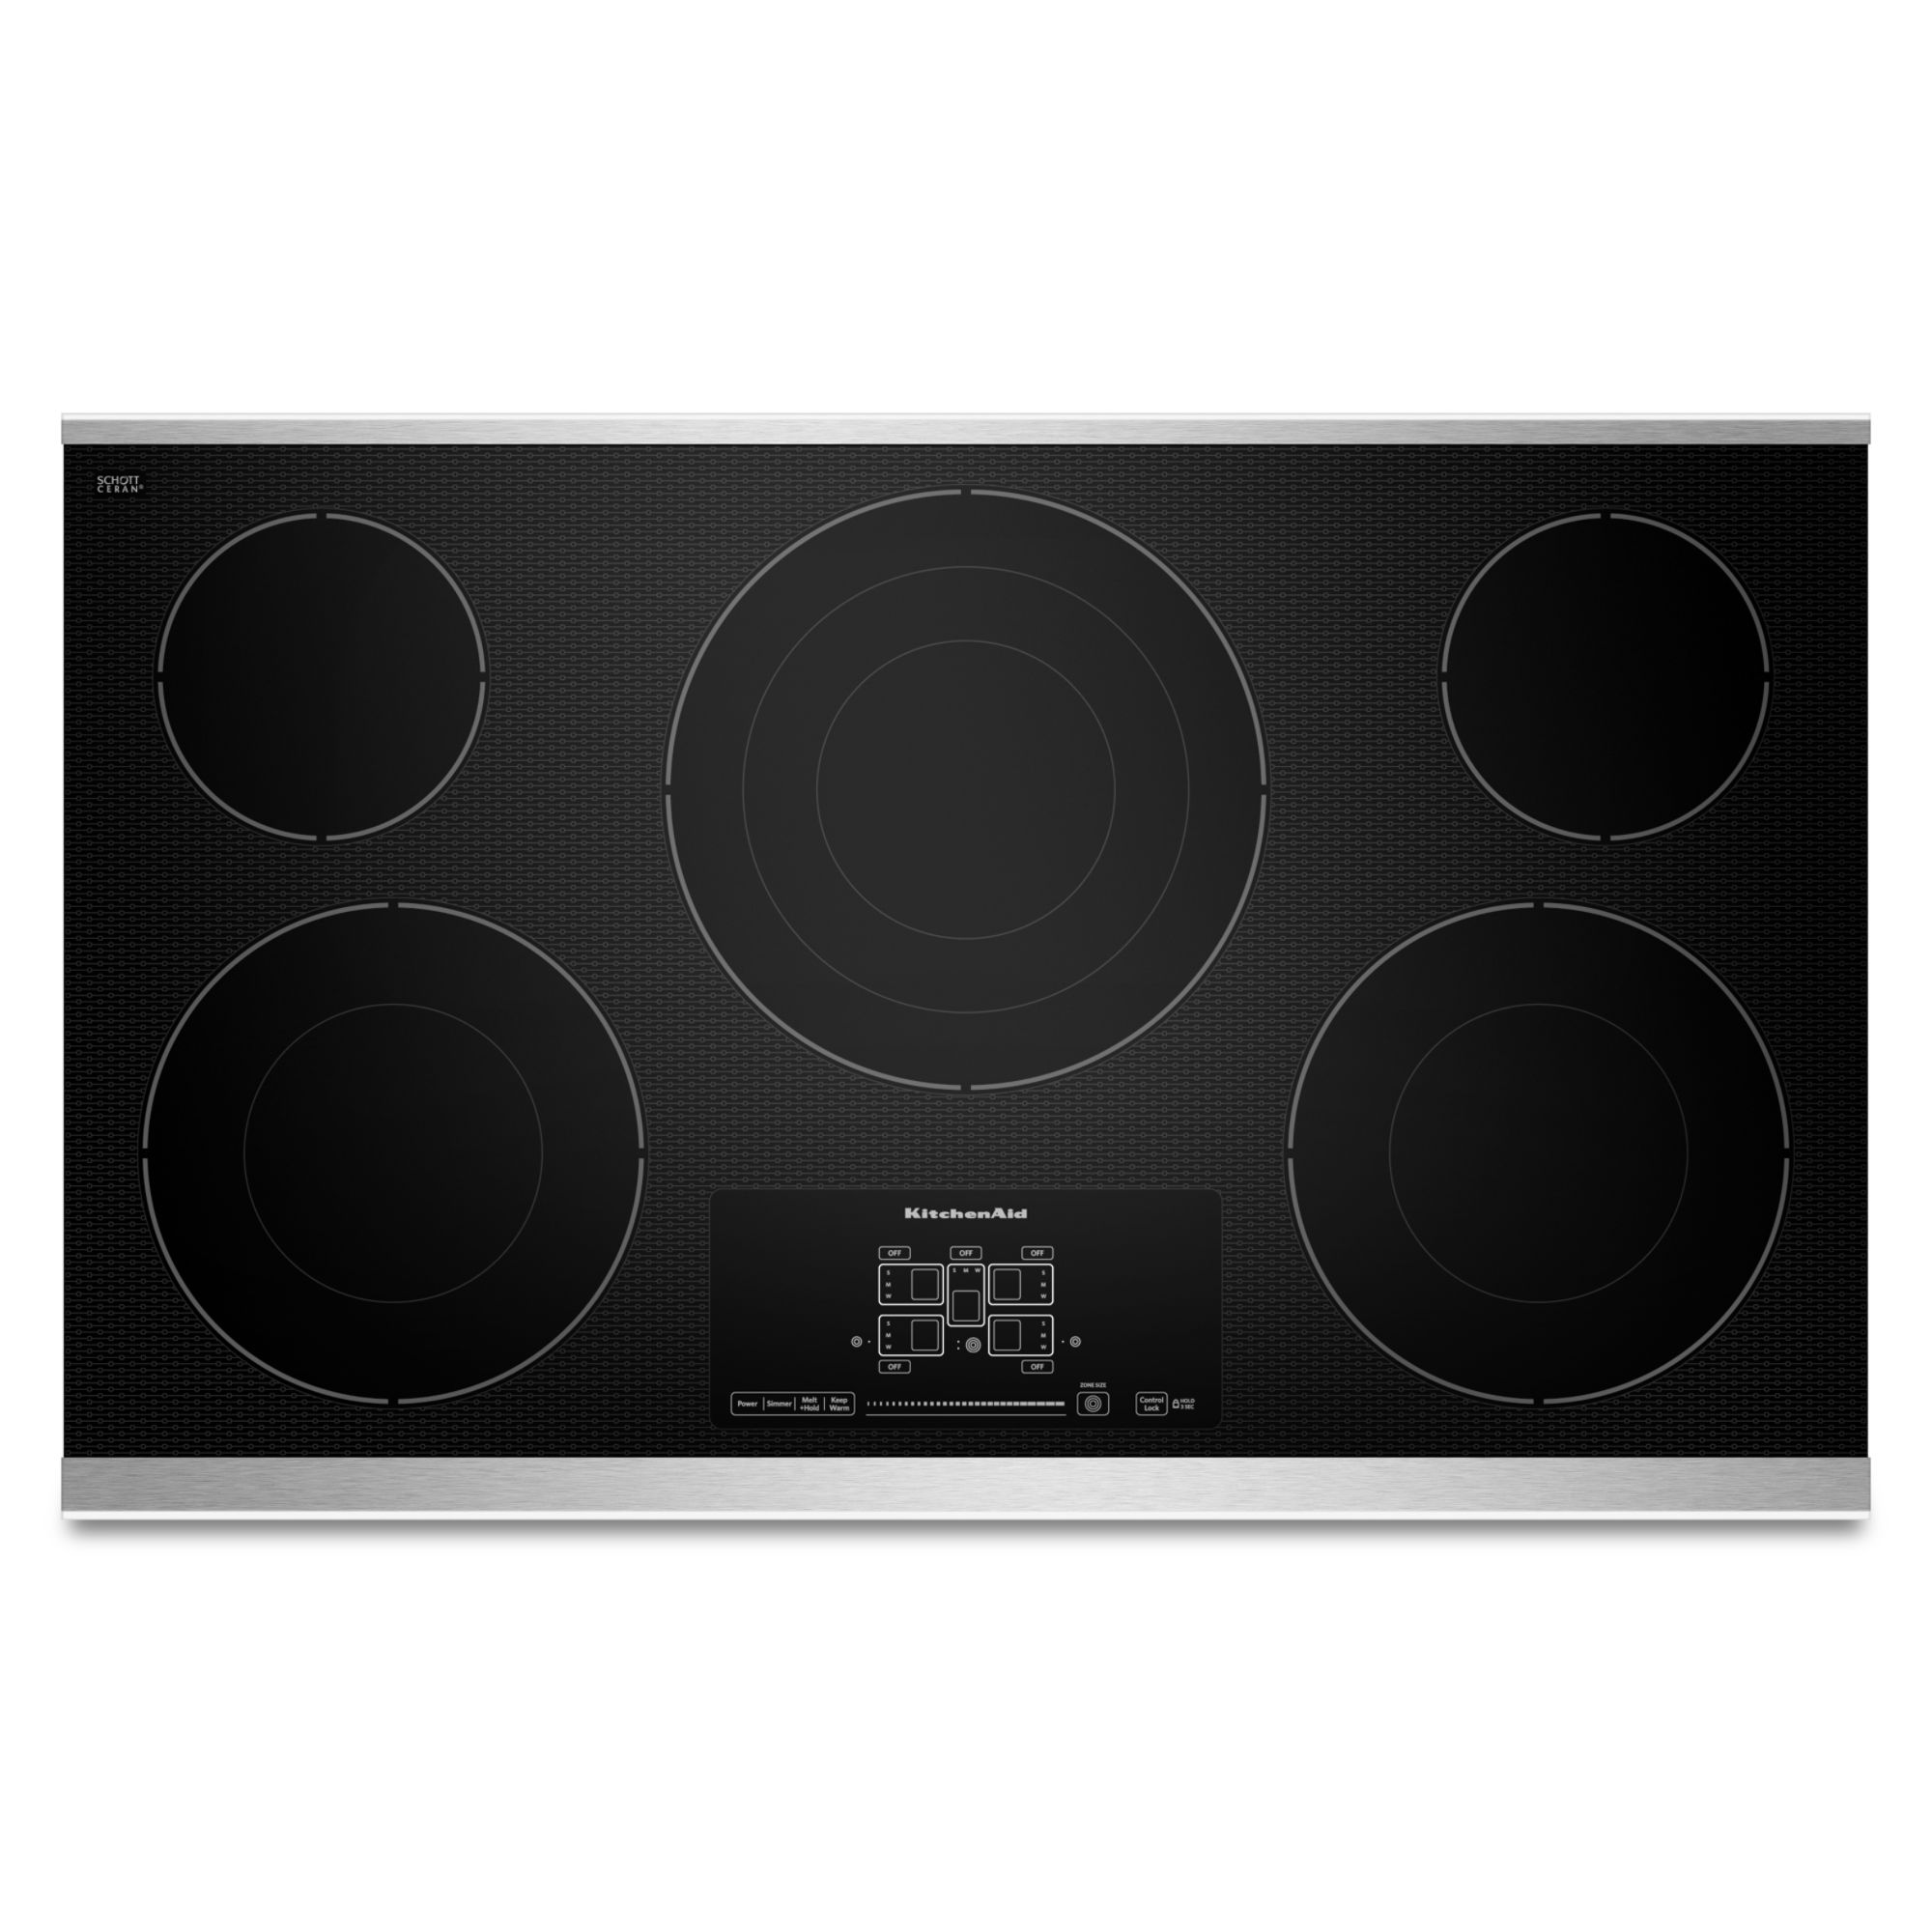 KitchenAid KECC667BSS 36 5-Element Electric Cooktop with Even-Heat™ Technology  - Stainless Steel